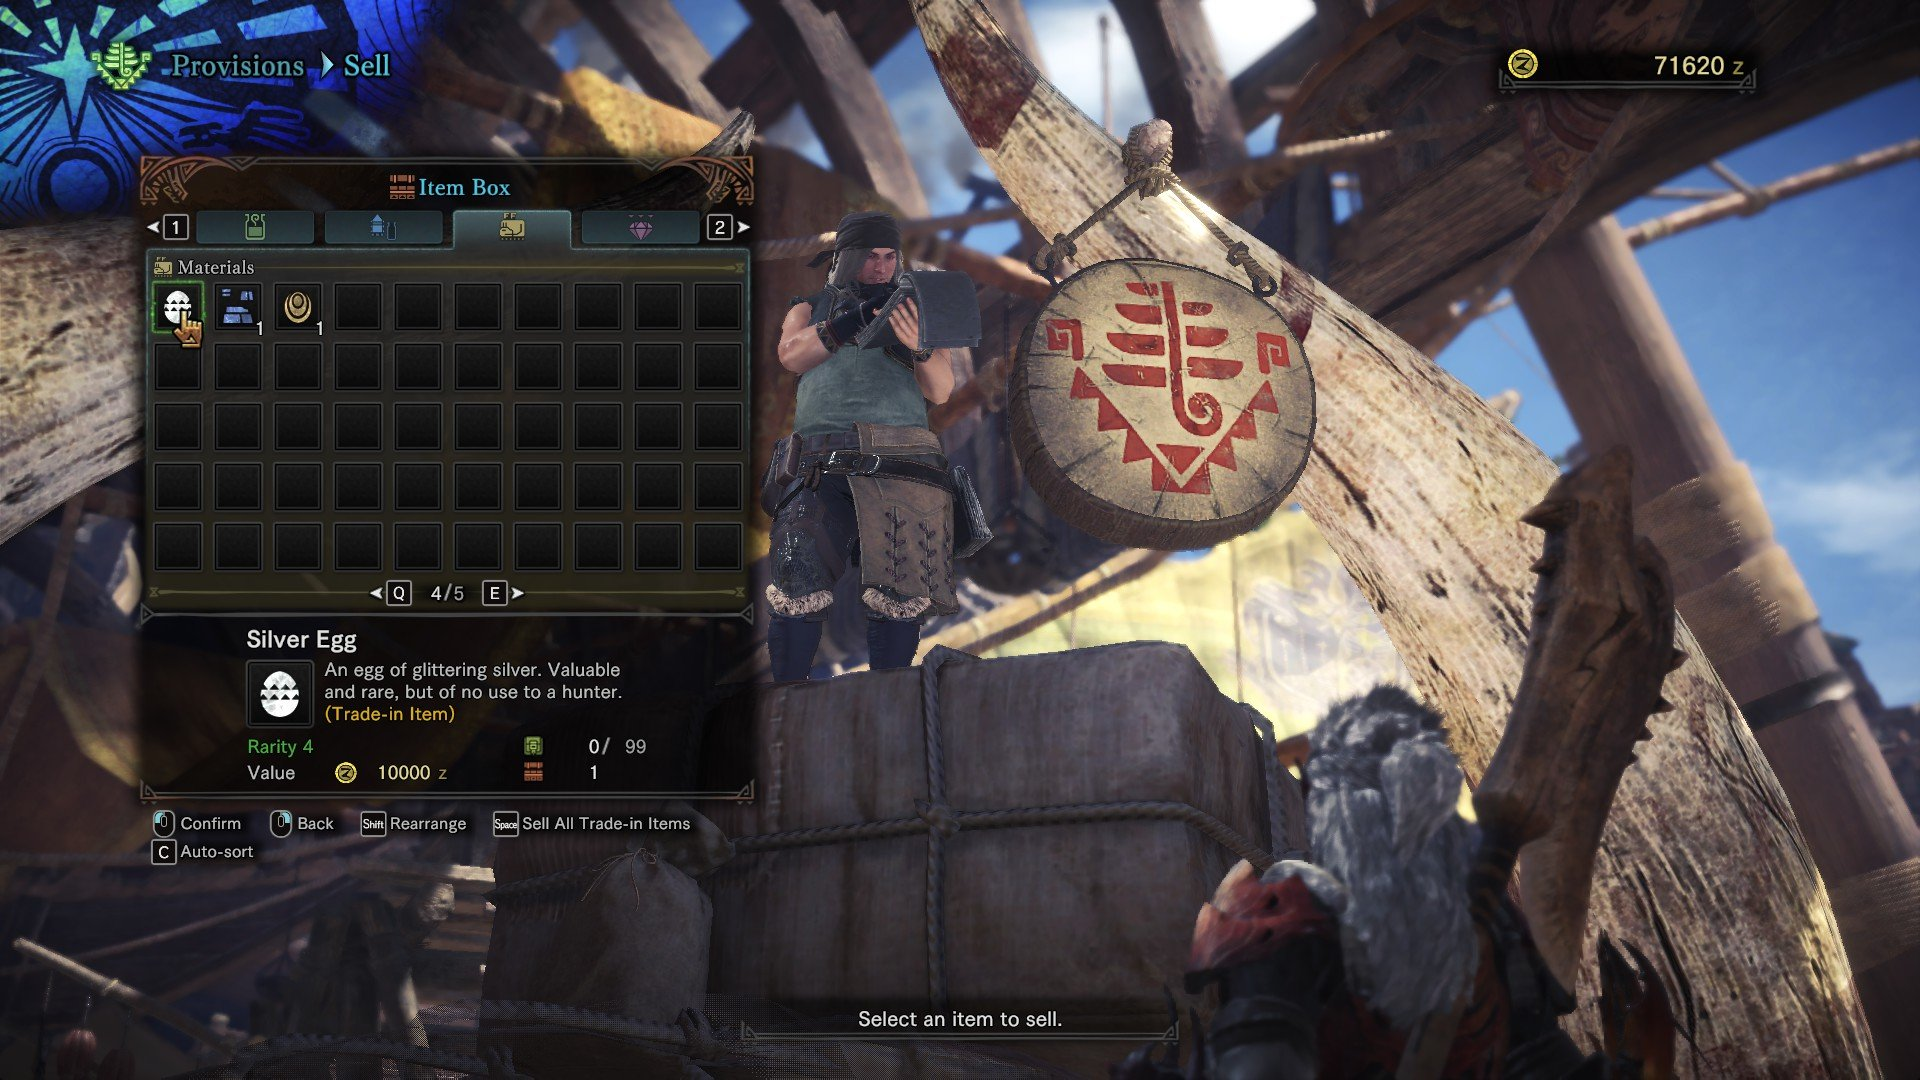 When to sell trade-in items in Monster Hunter: World | Shacknews